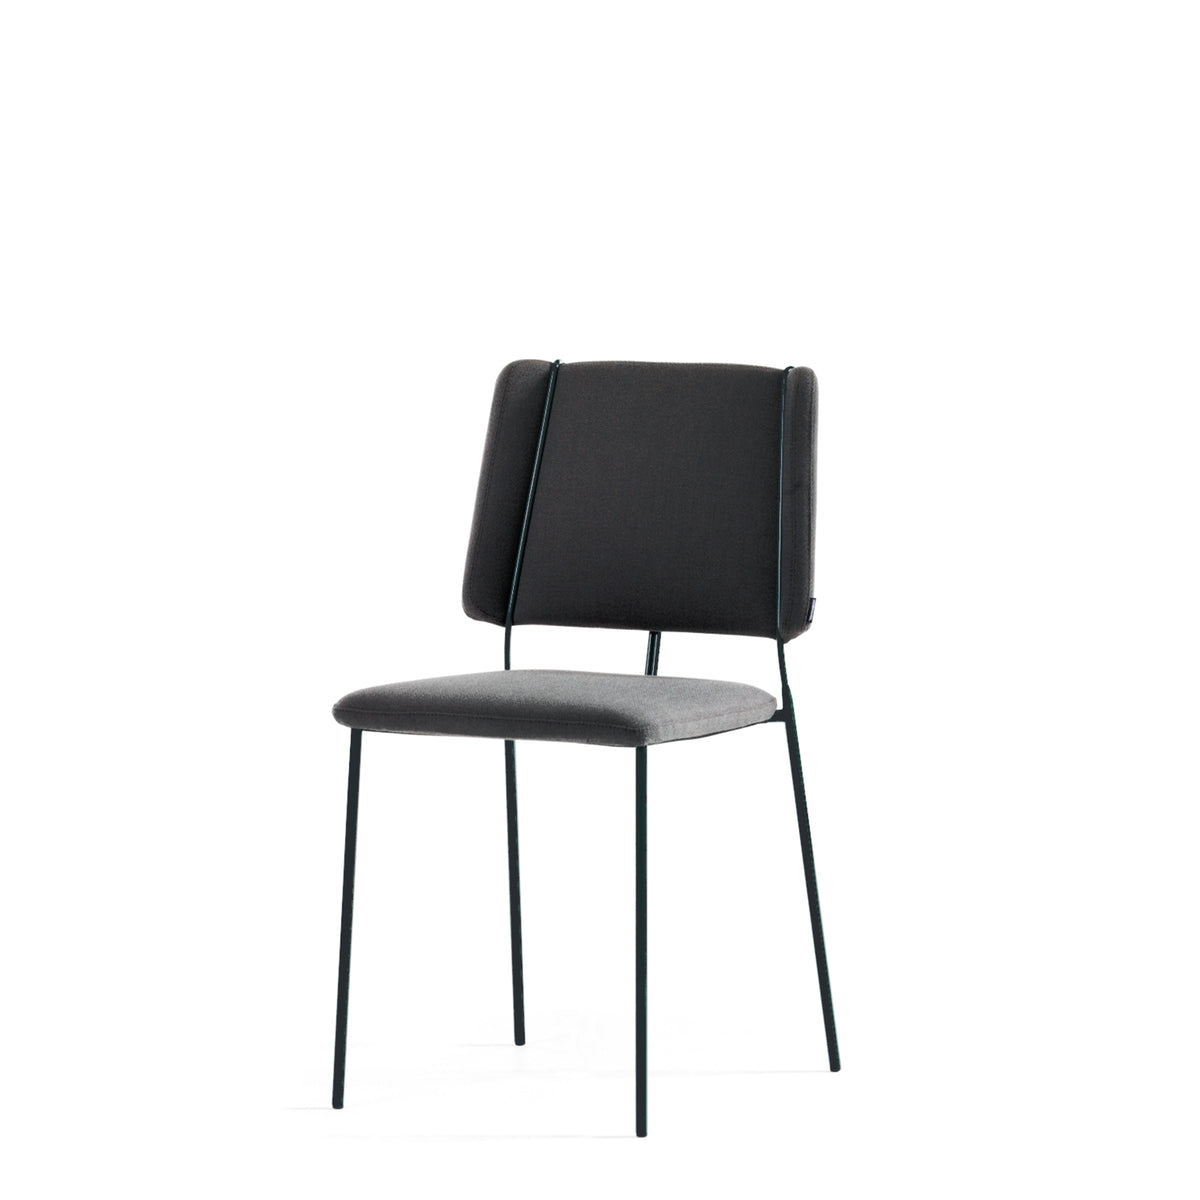 Johanson Design - Frankie Stackable Chair - Set of Four - Graphite Black - Set of Four